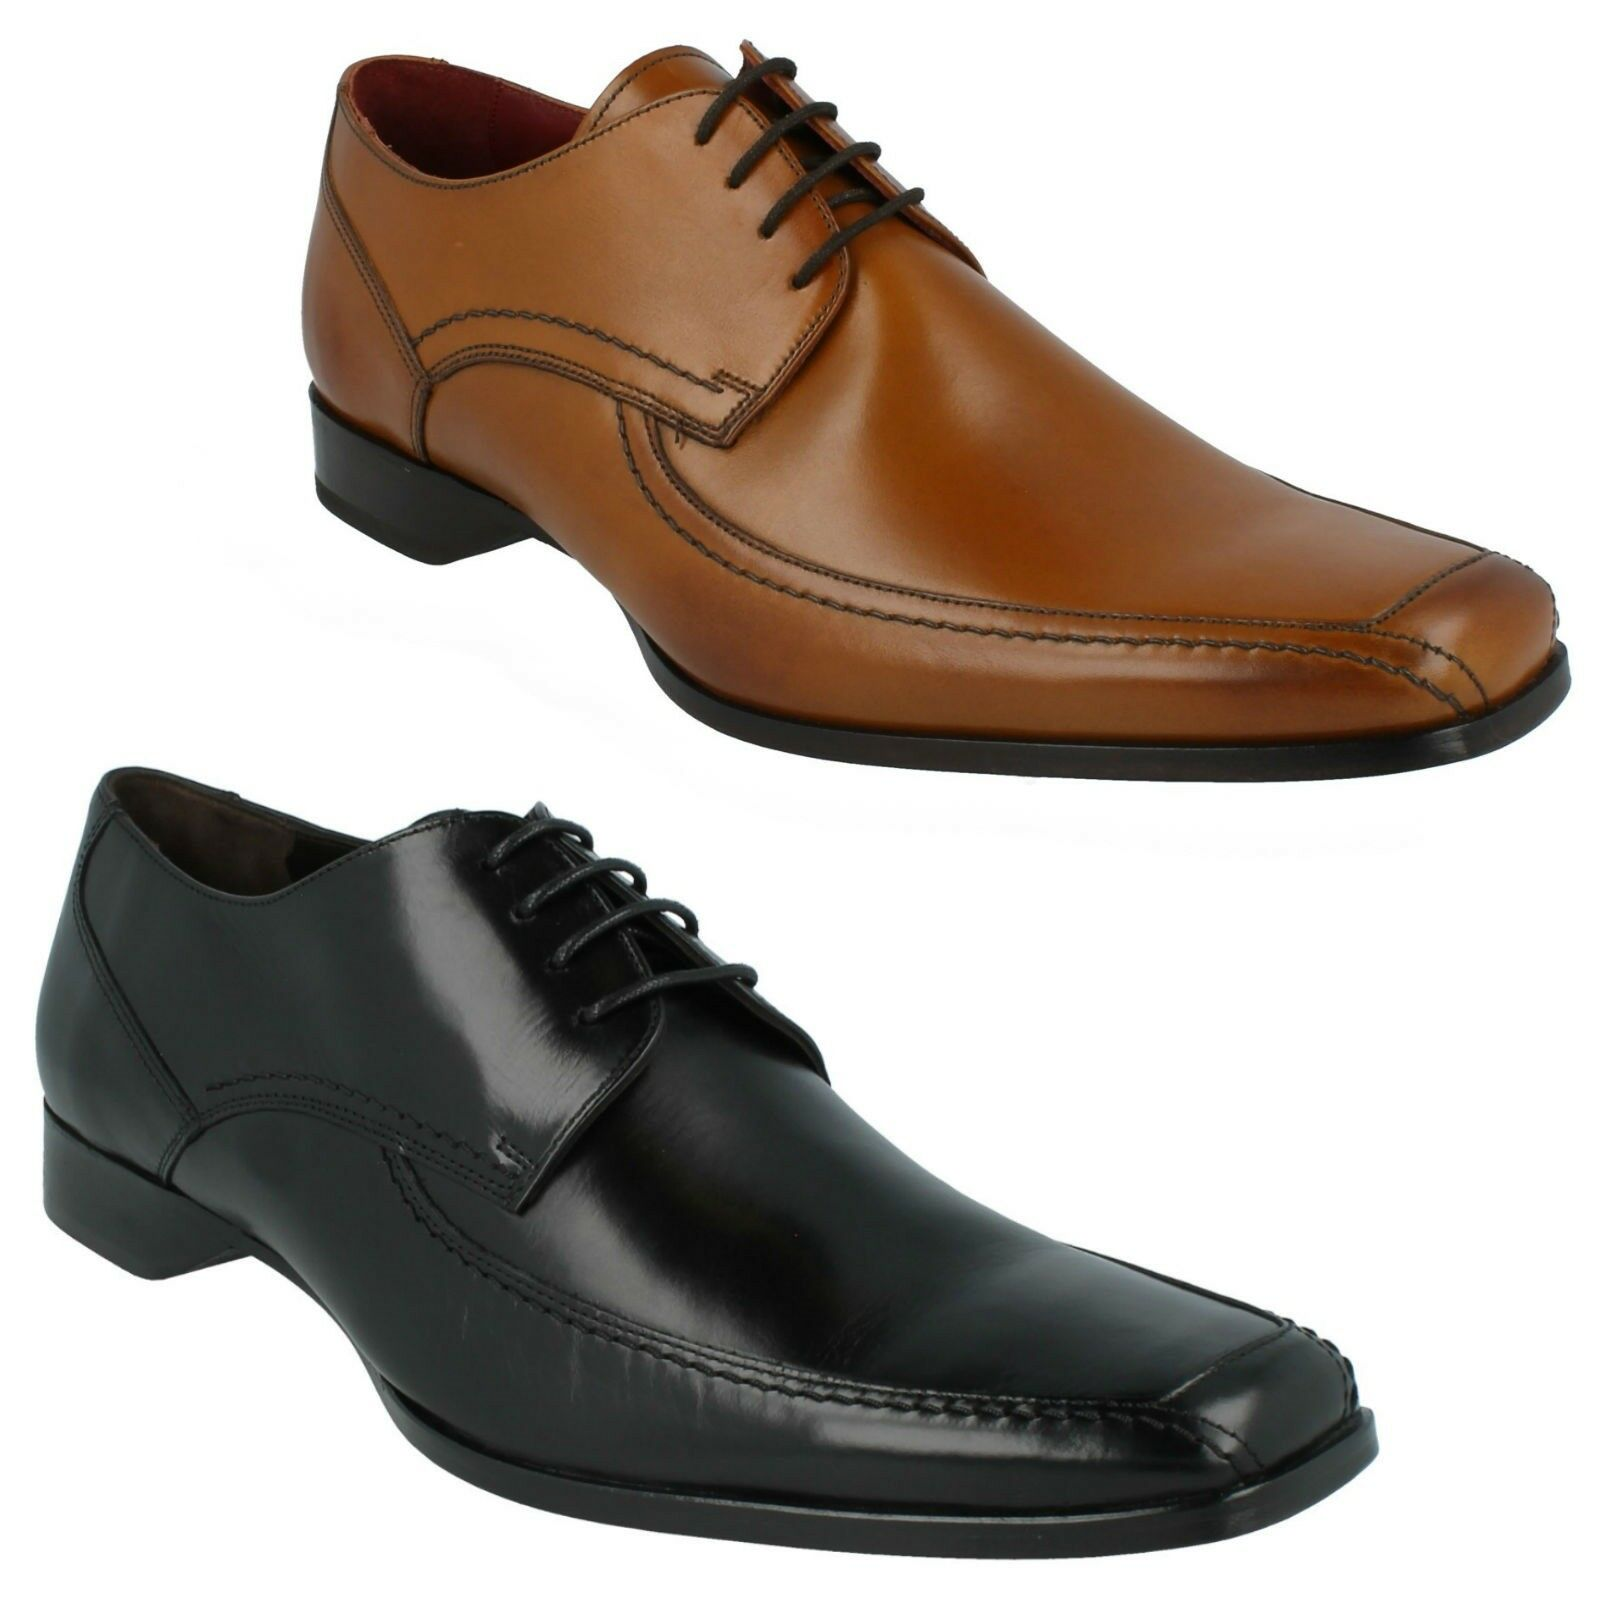 DESIGN LOAKE 1369B 1369T MENS LACE UP LEATHER SMART FORMAL CASUAL SHOES SIZE